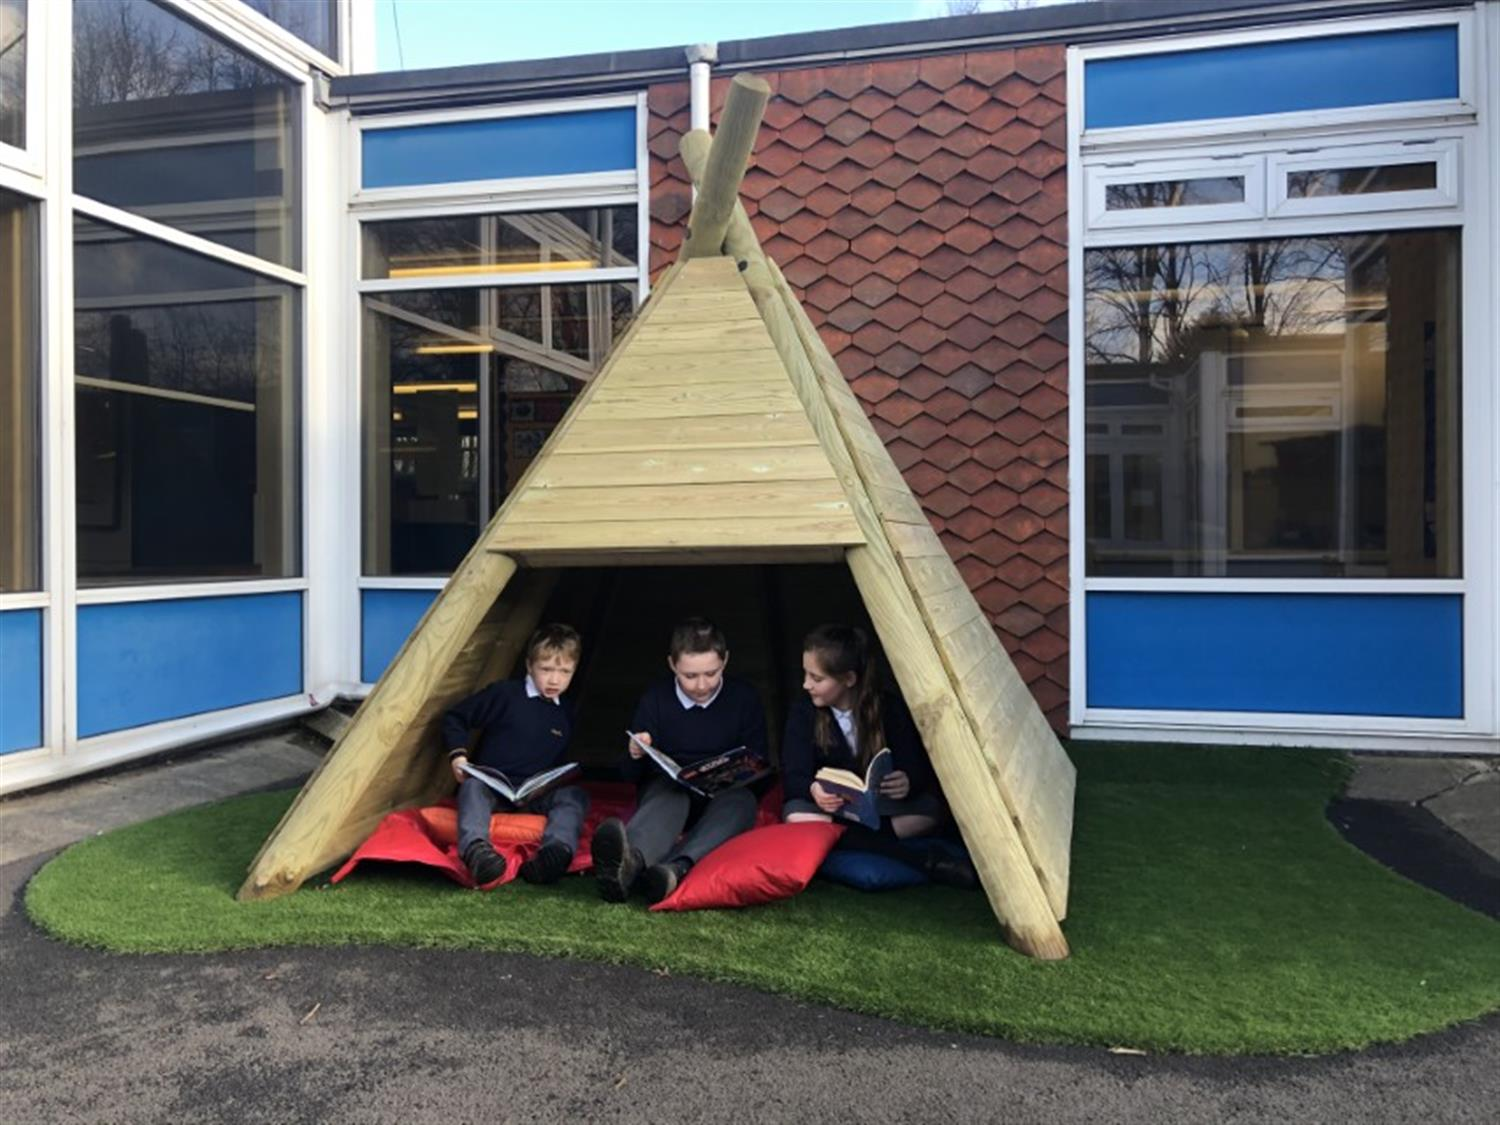 children reading in a playground den